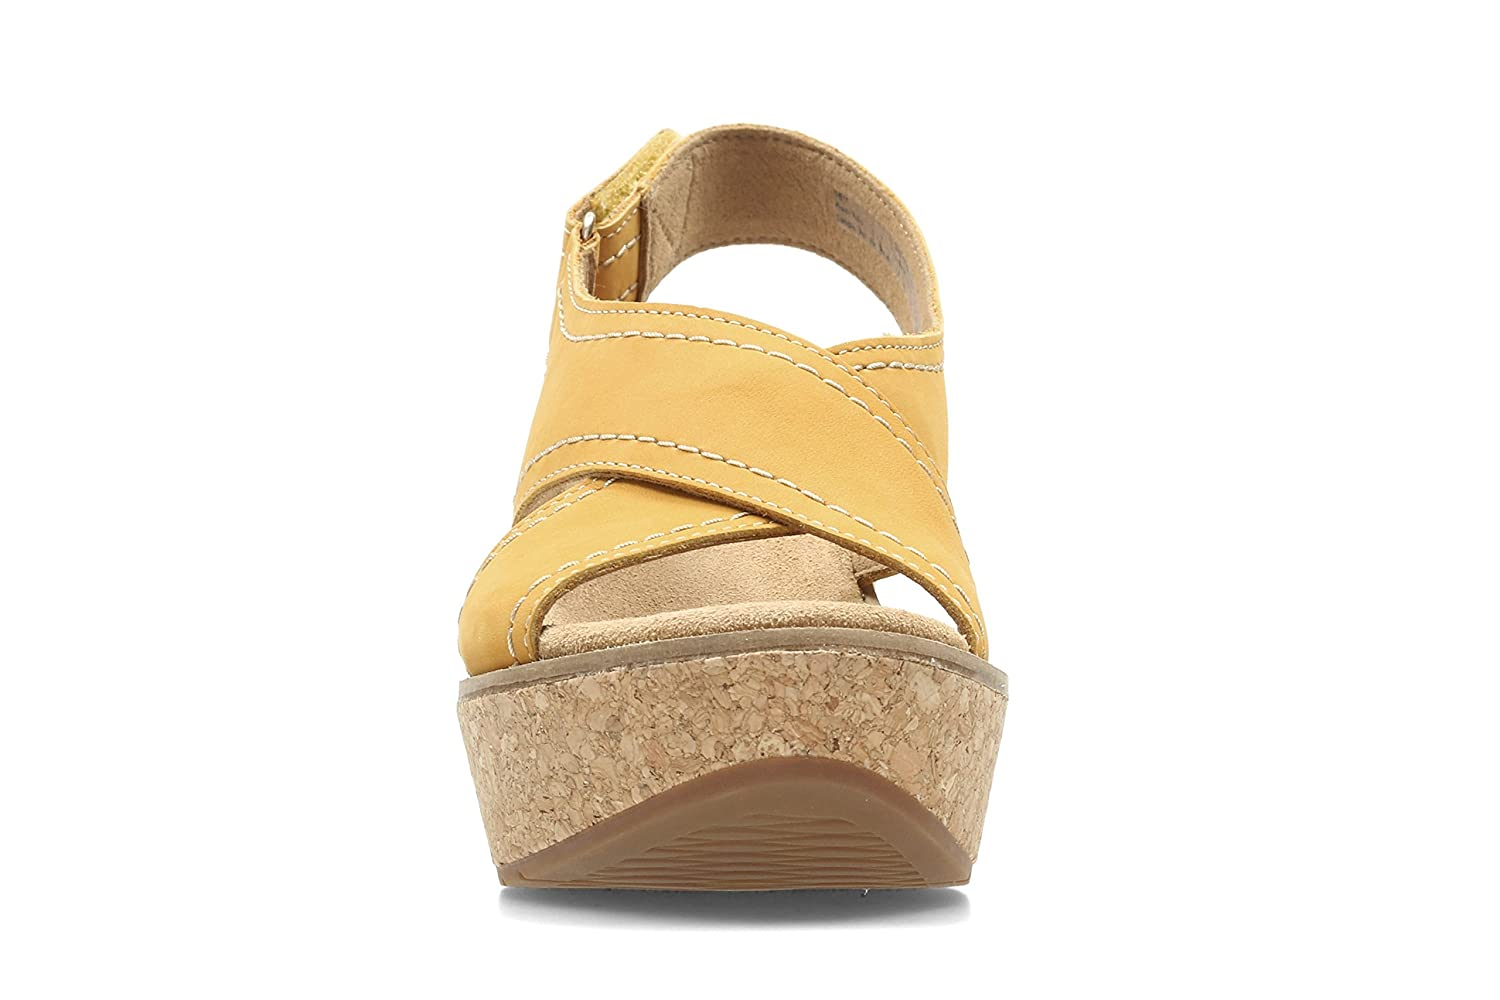 6f26f050ed428d Clarks Wedge Sandals Shoes 26123147 Aisley Tulip Yellow Size 40 Yellow   Amazon.co.uk  Shoes   Bags